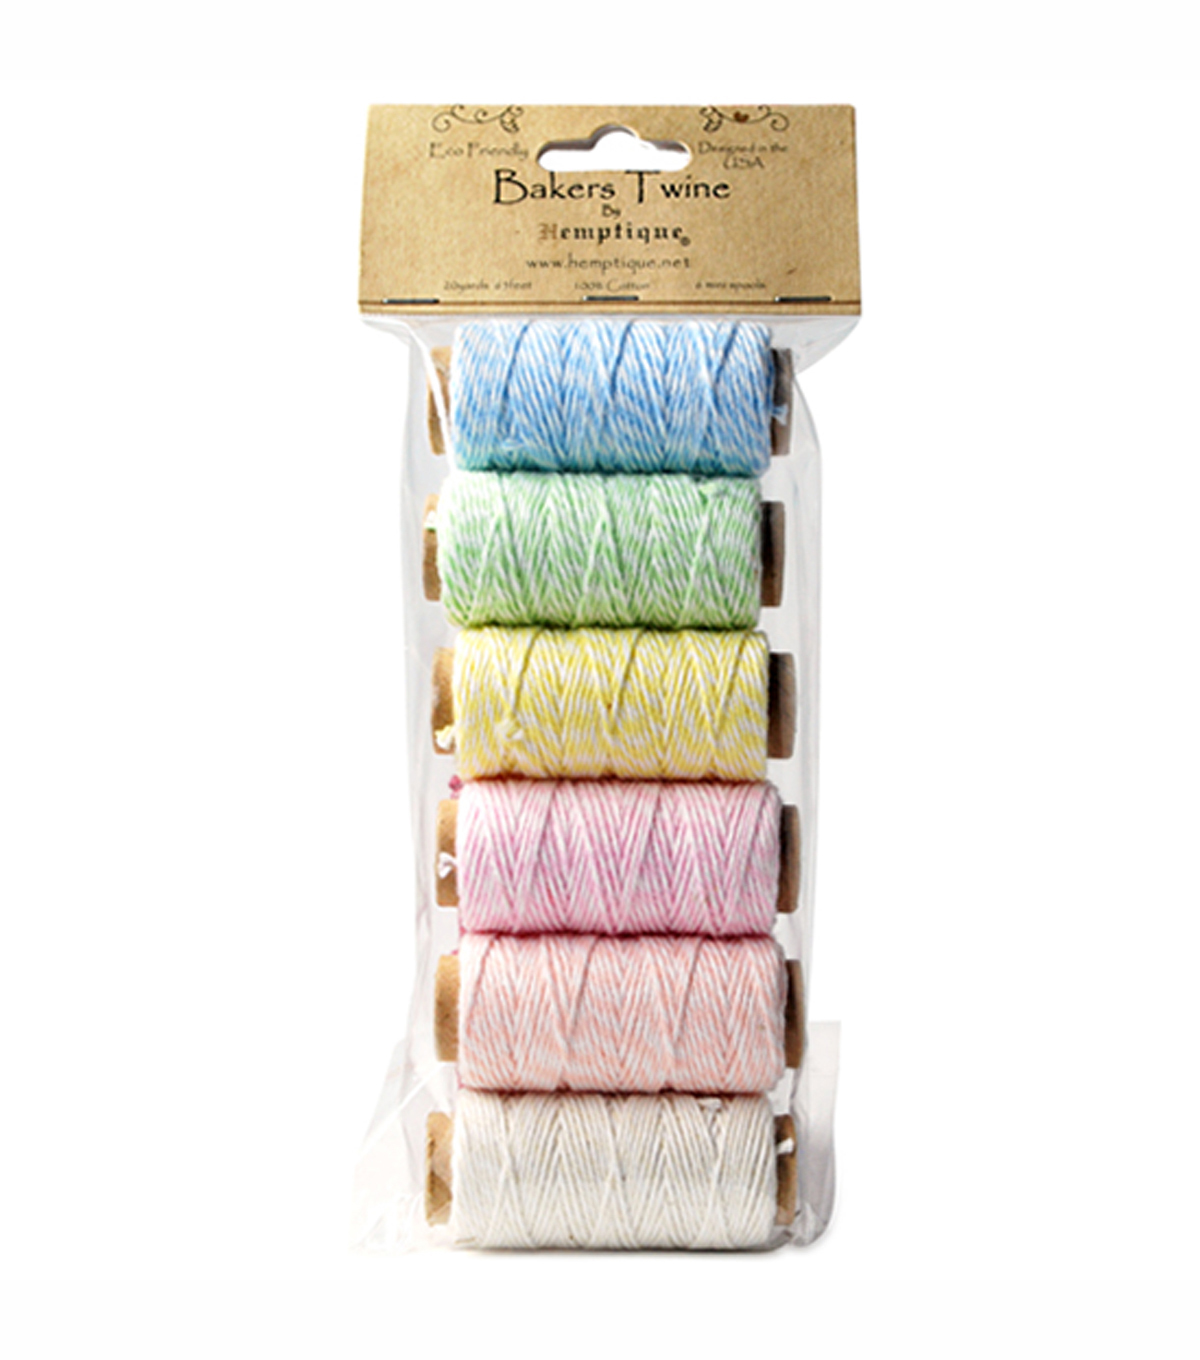 Hemptique Baker\u0027s Twine 2 Ply Mini Spool Bag Set Creamy Pastel